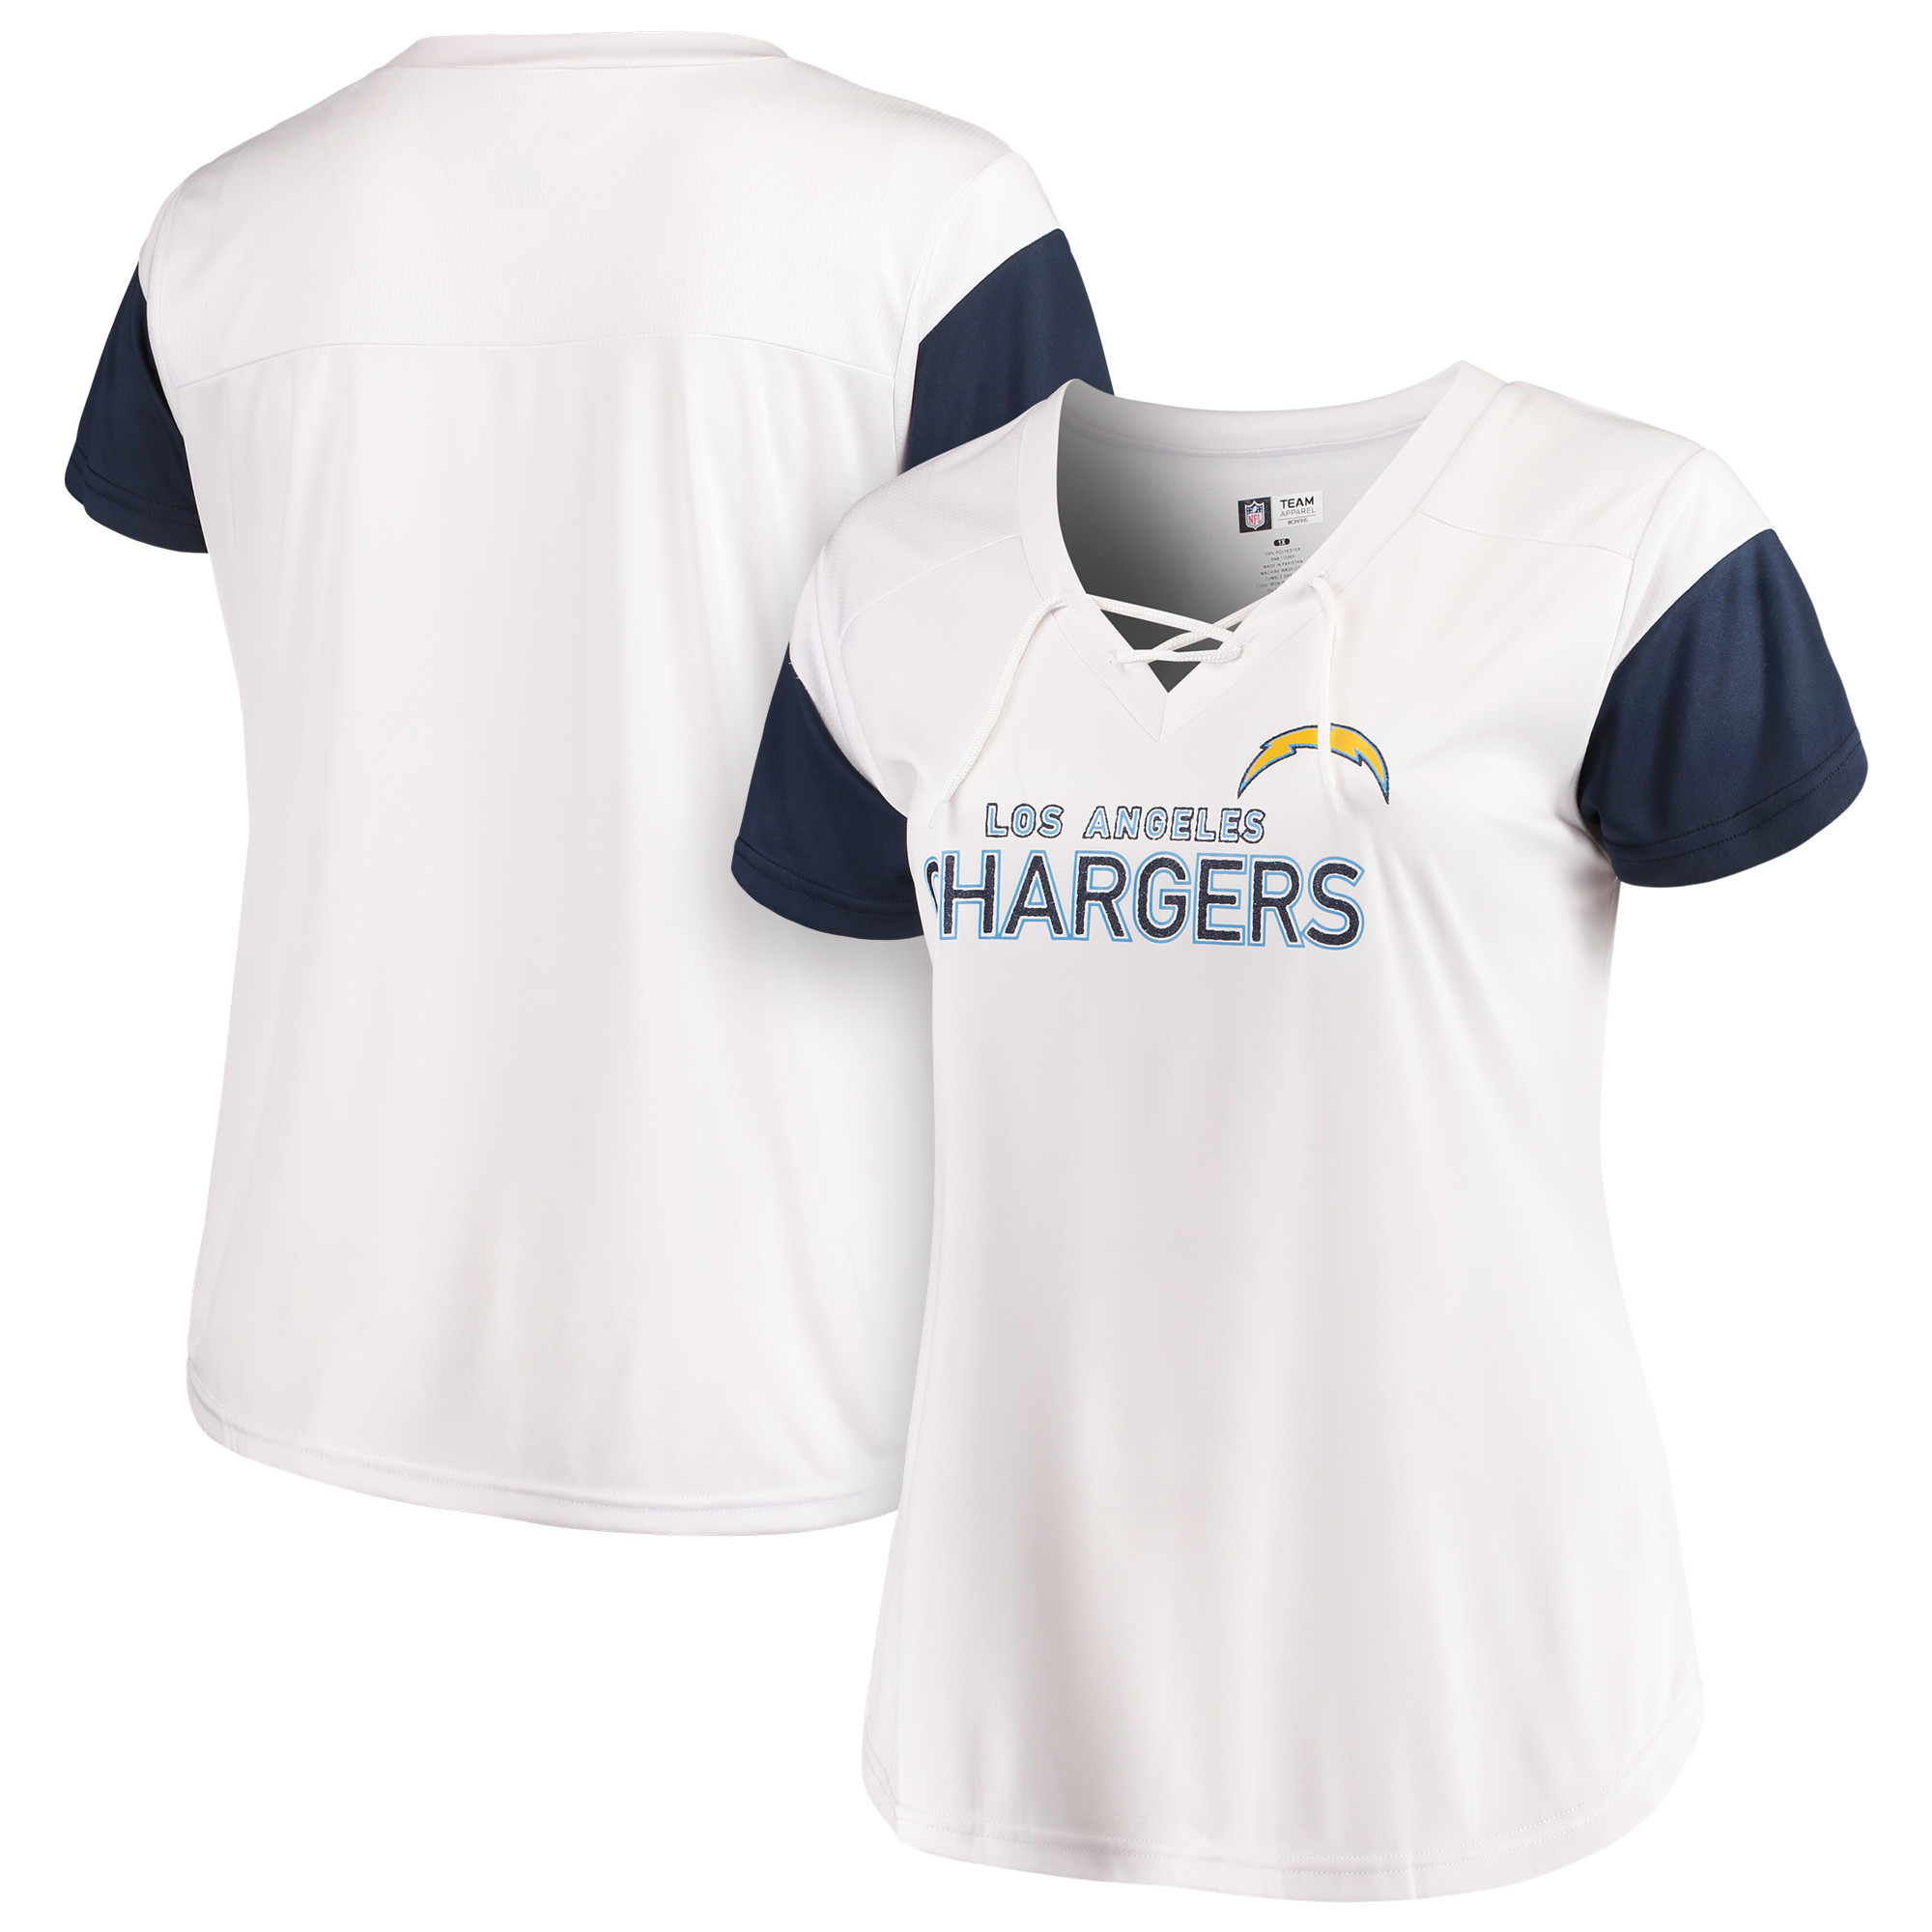 Los Angeles Chargers Majestic Women's Lace-Up V-Neck T-Shirt - White/Navy